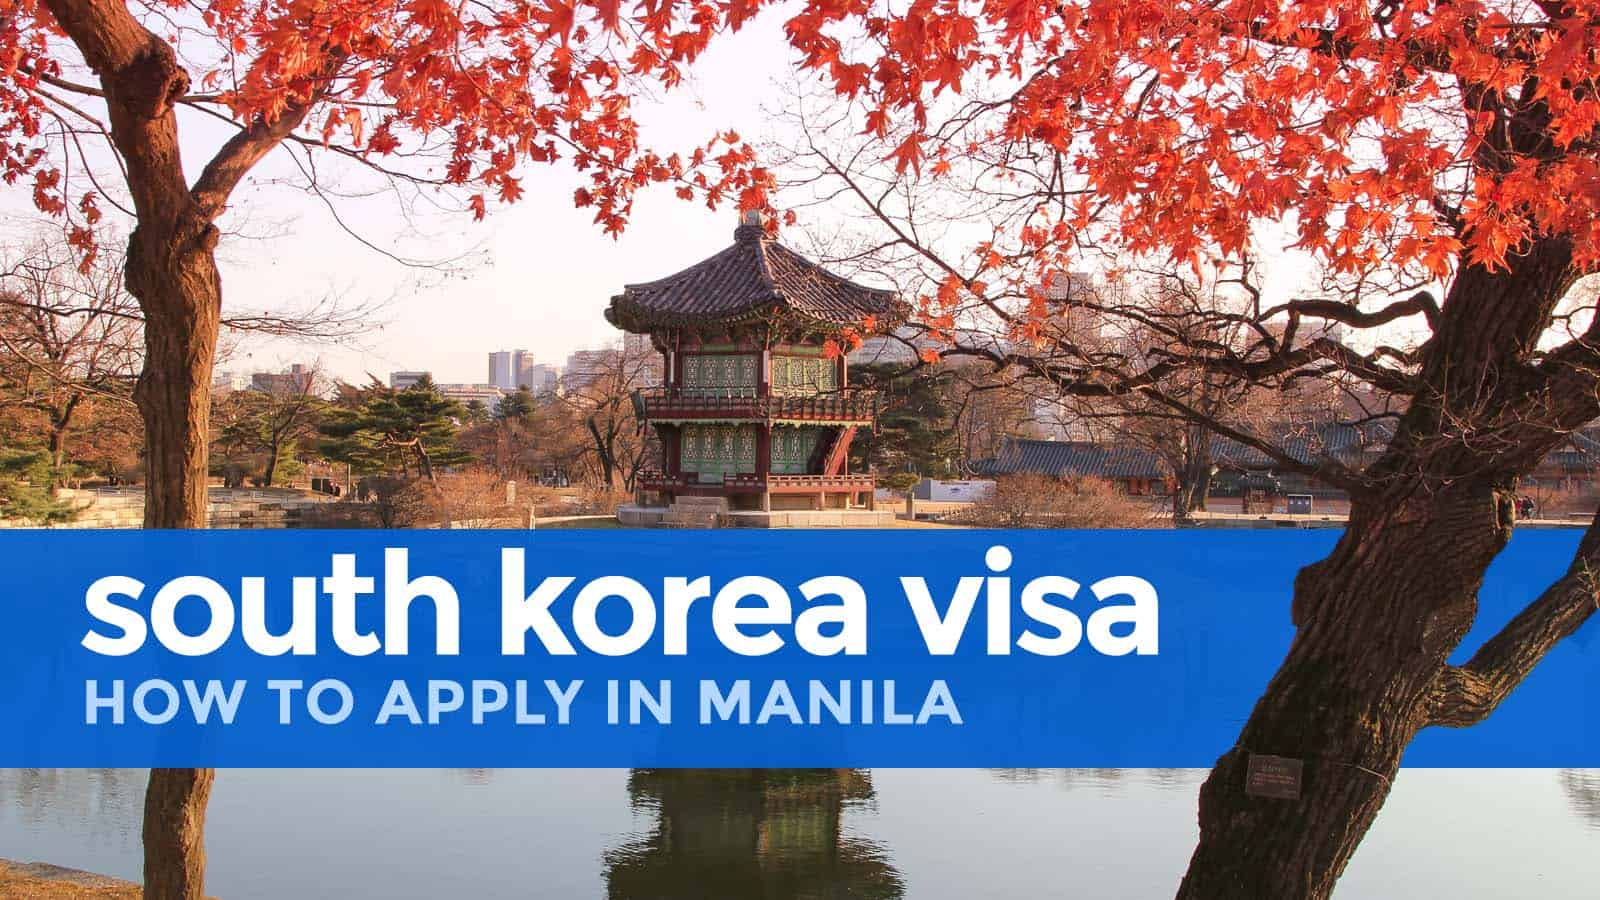 How To Apply For A South Korea Visa In Manila The Poor